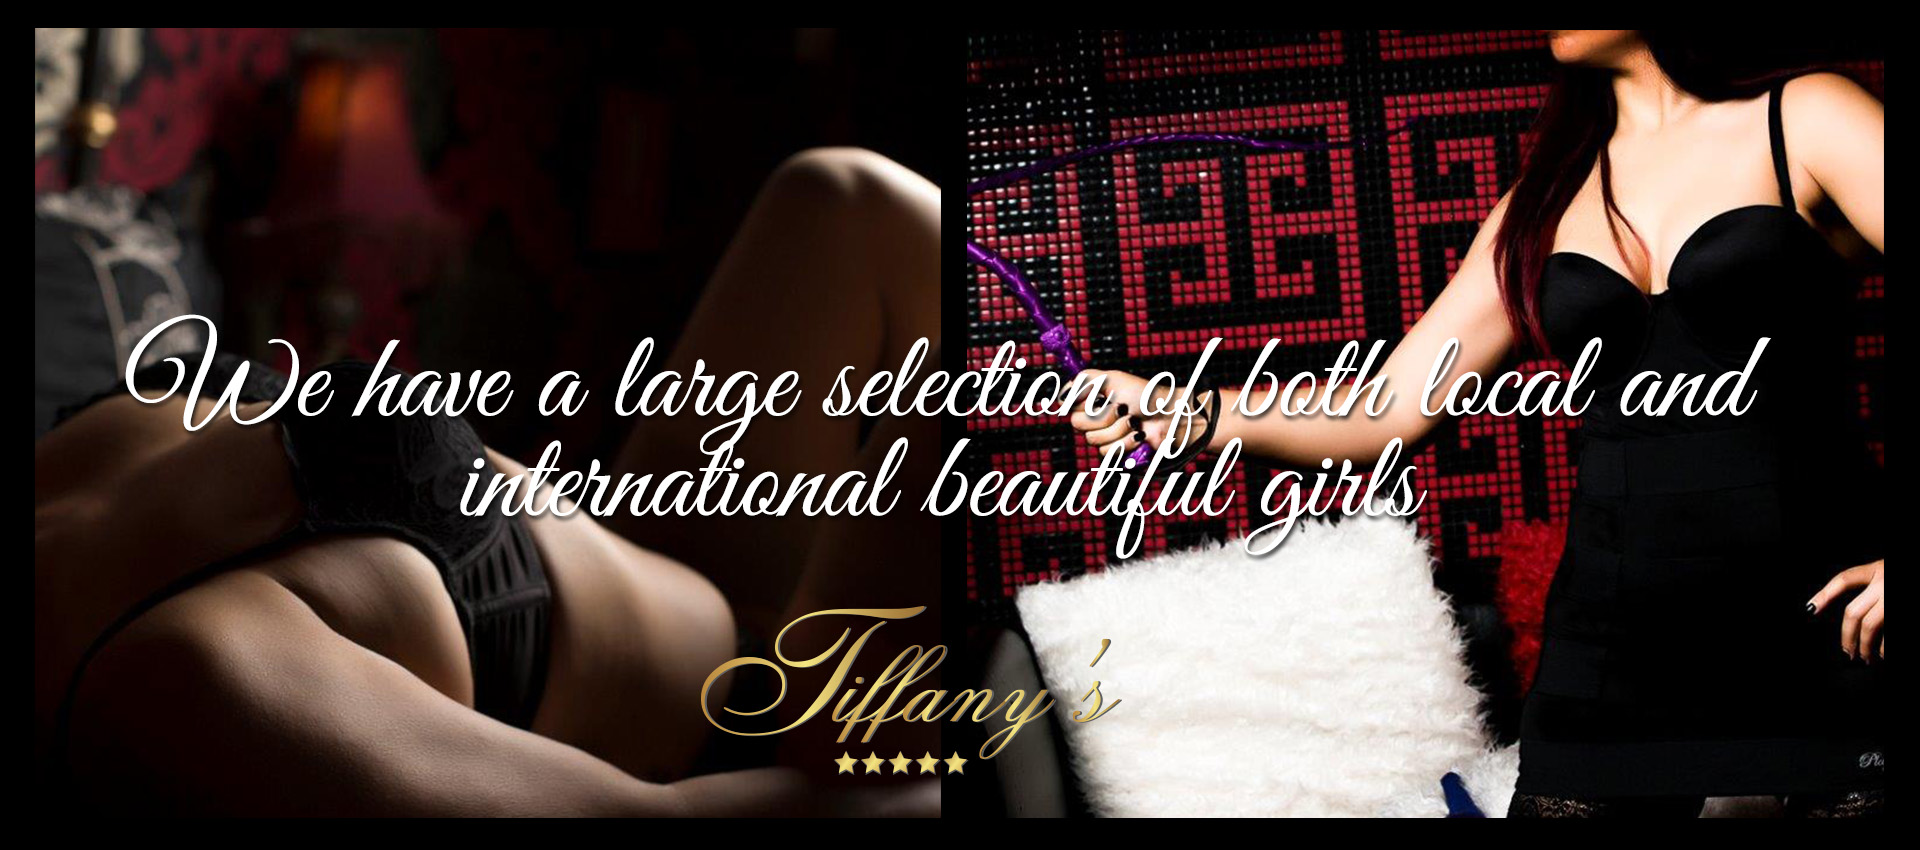 Local & International Girls | Adult Services Sydney | Tiffany's Girls